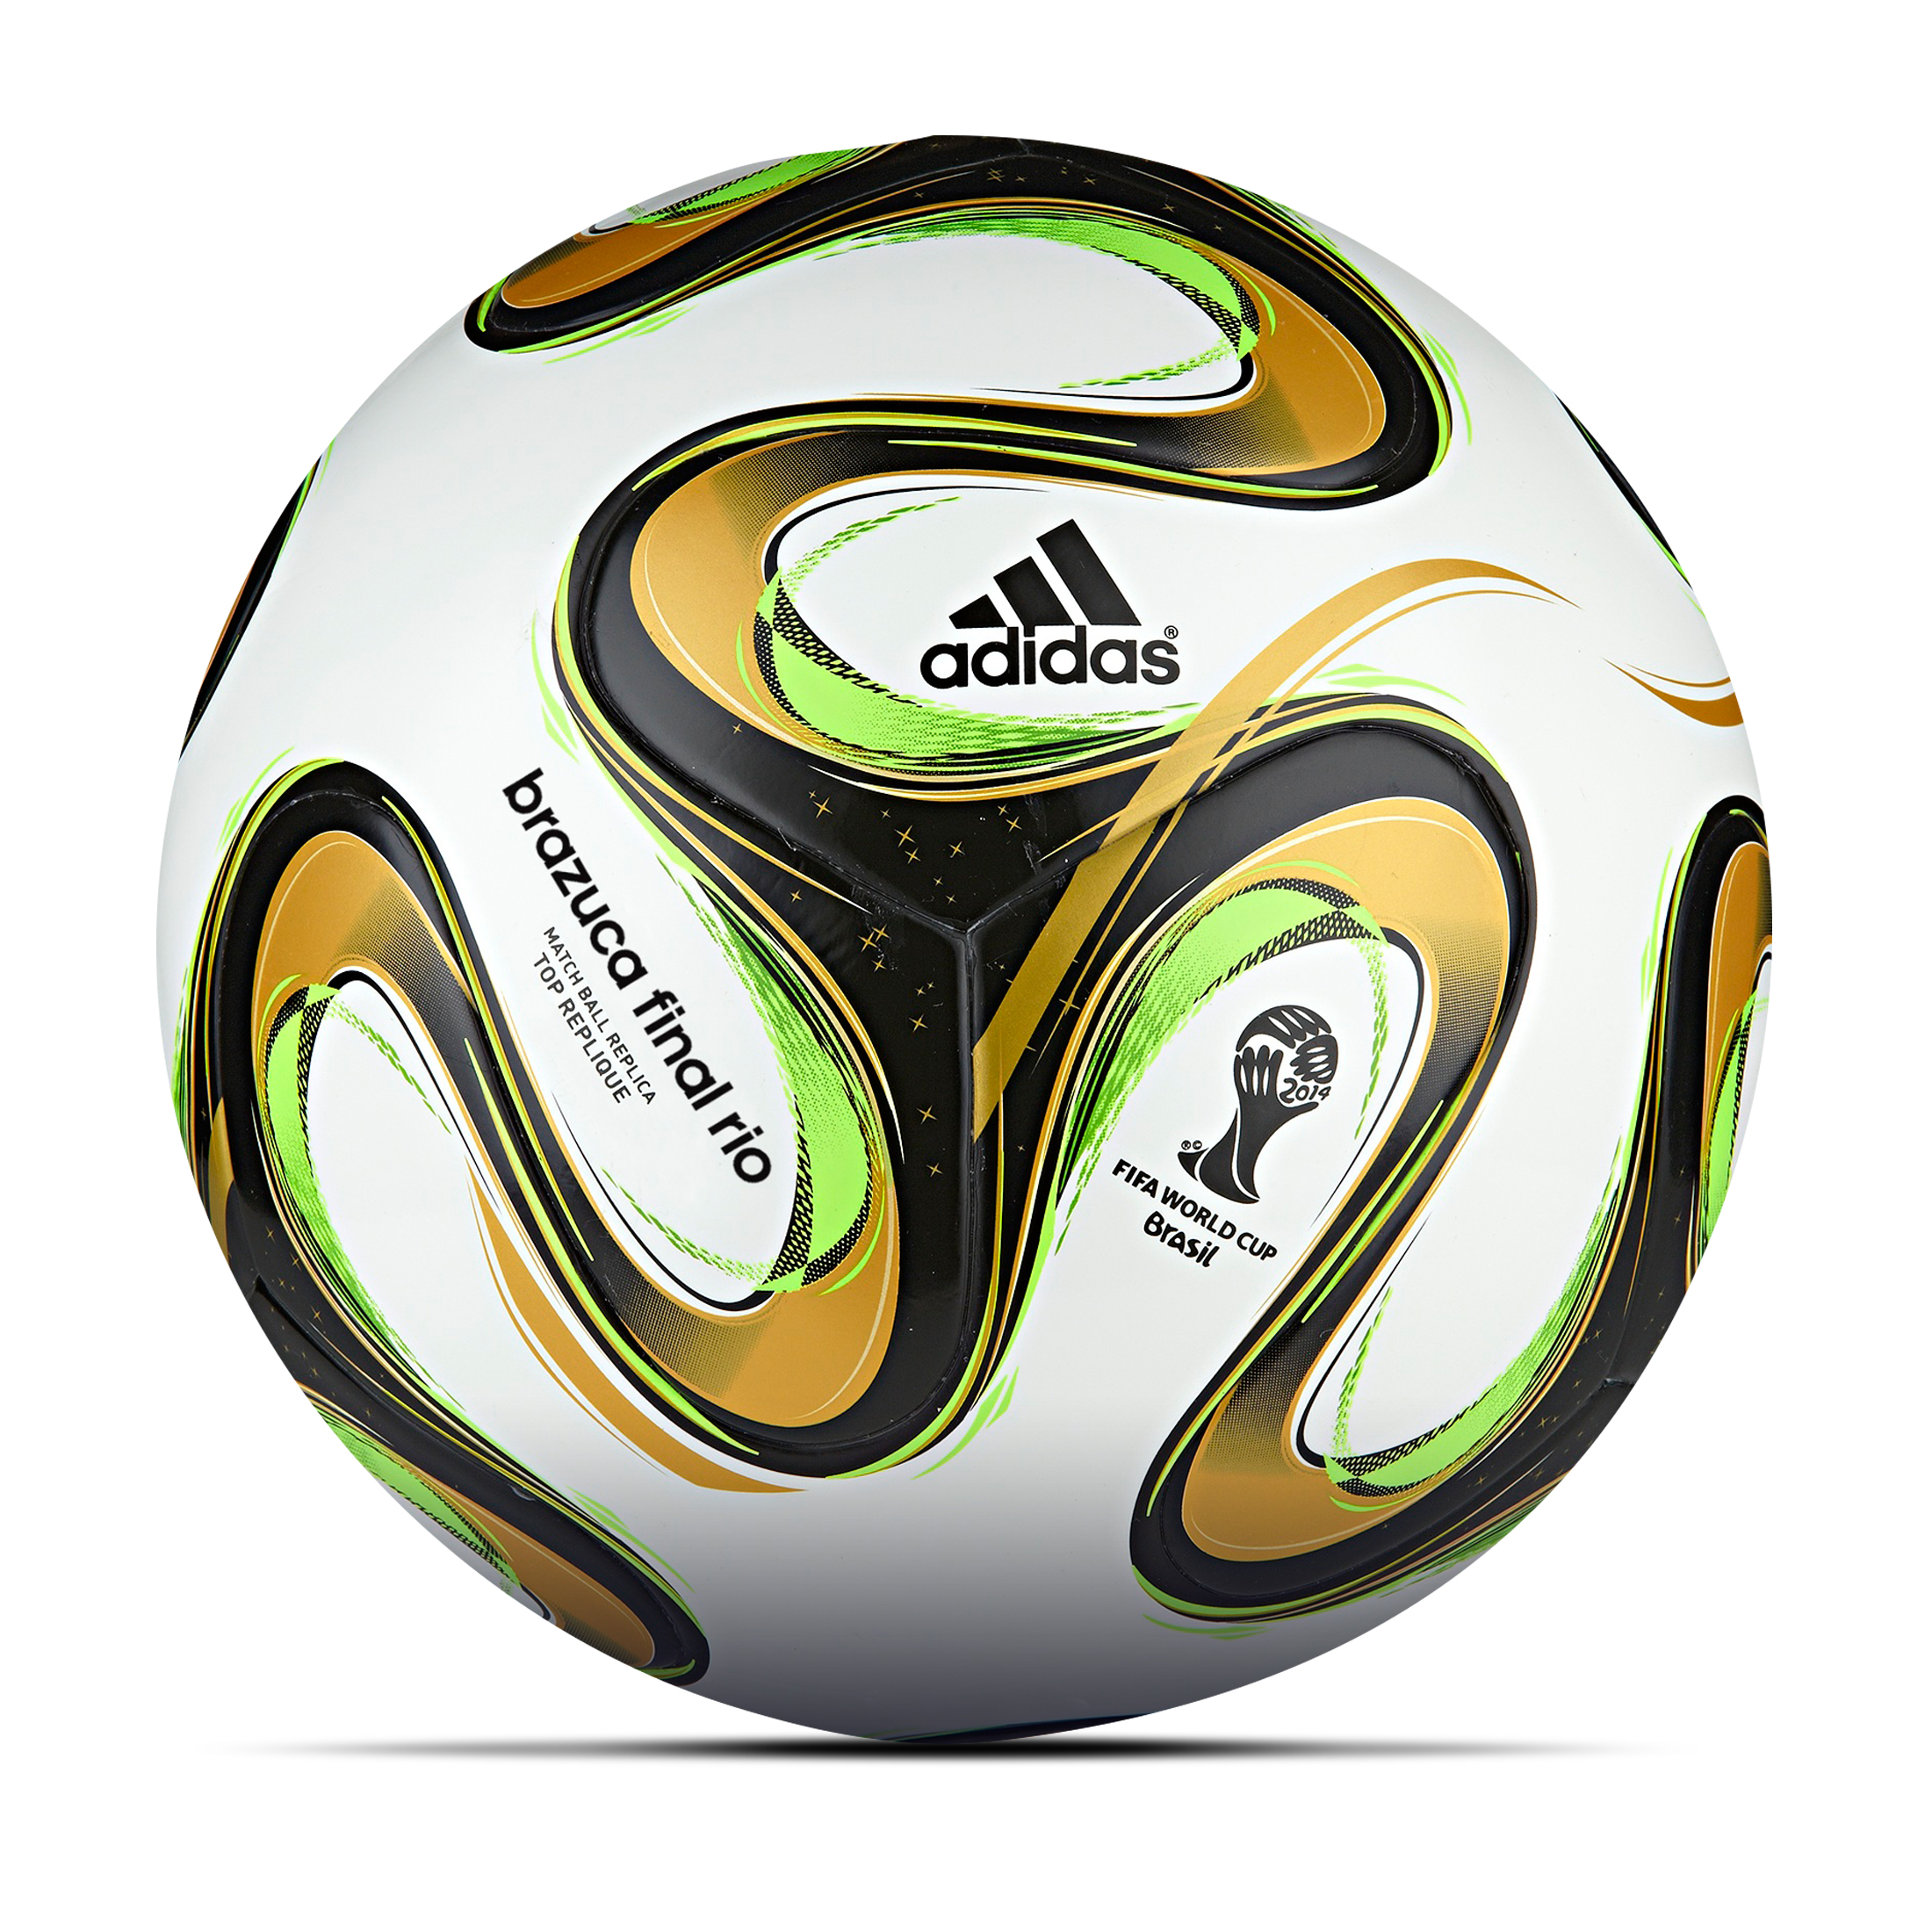 Adidas Brazuca World Cup 2014 Final Top Replique Football